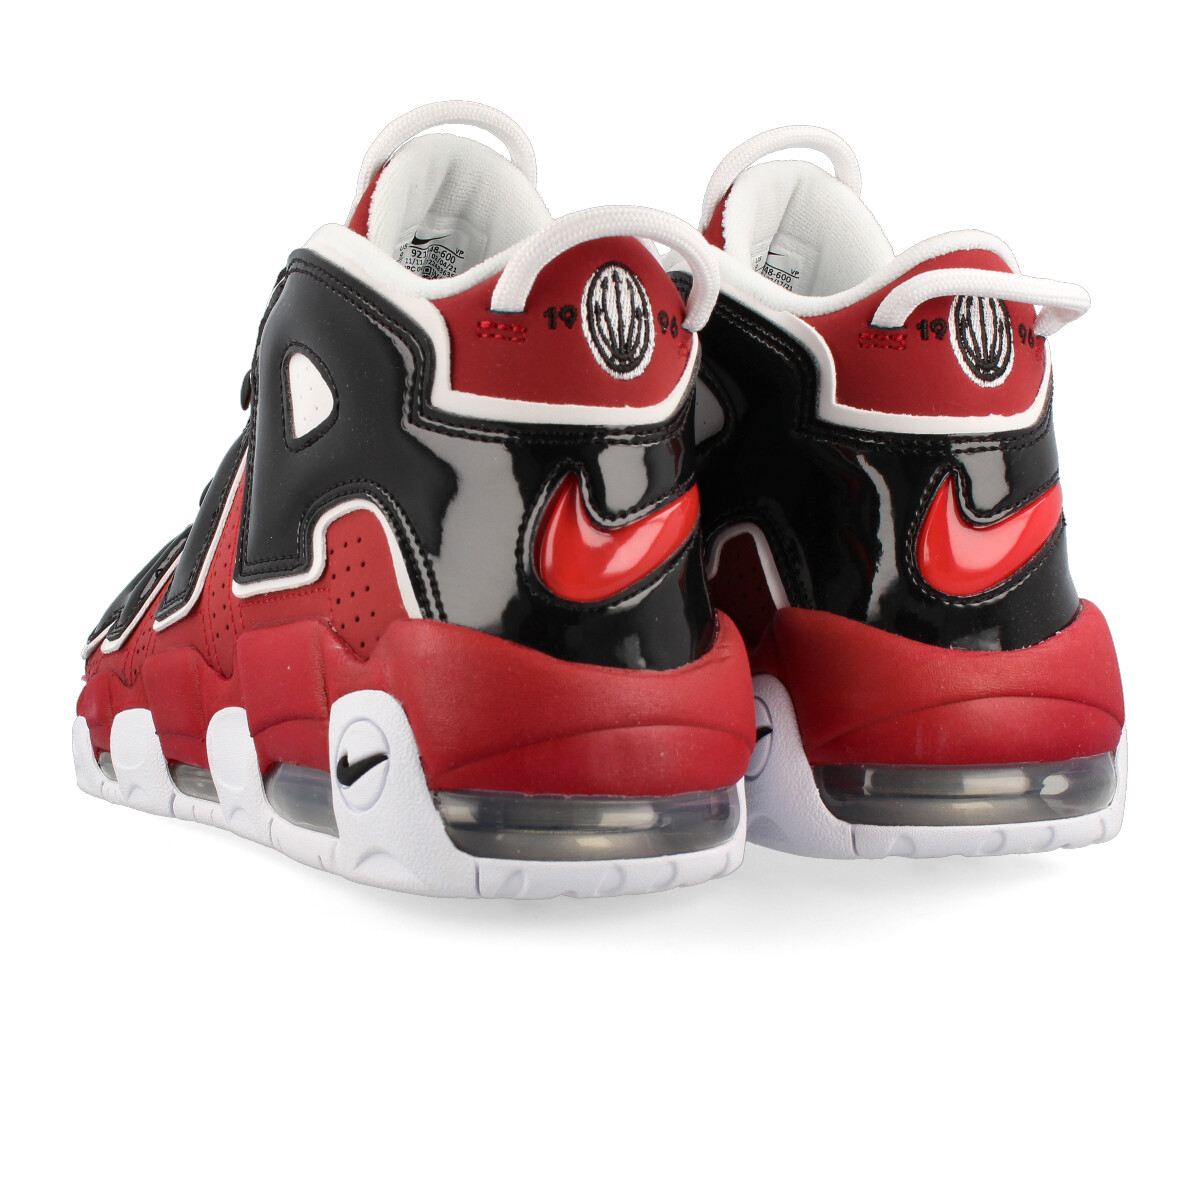 NIKE AIR MORE UPTEMPO 96耐克更拍子愈来愈快96 VARSITY RED/WHITE/BLACK